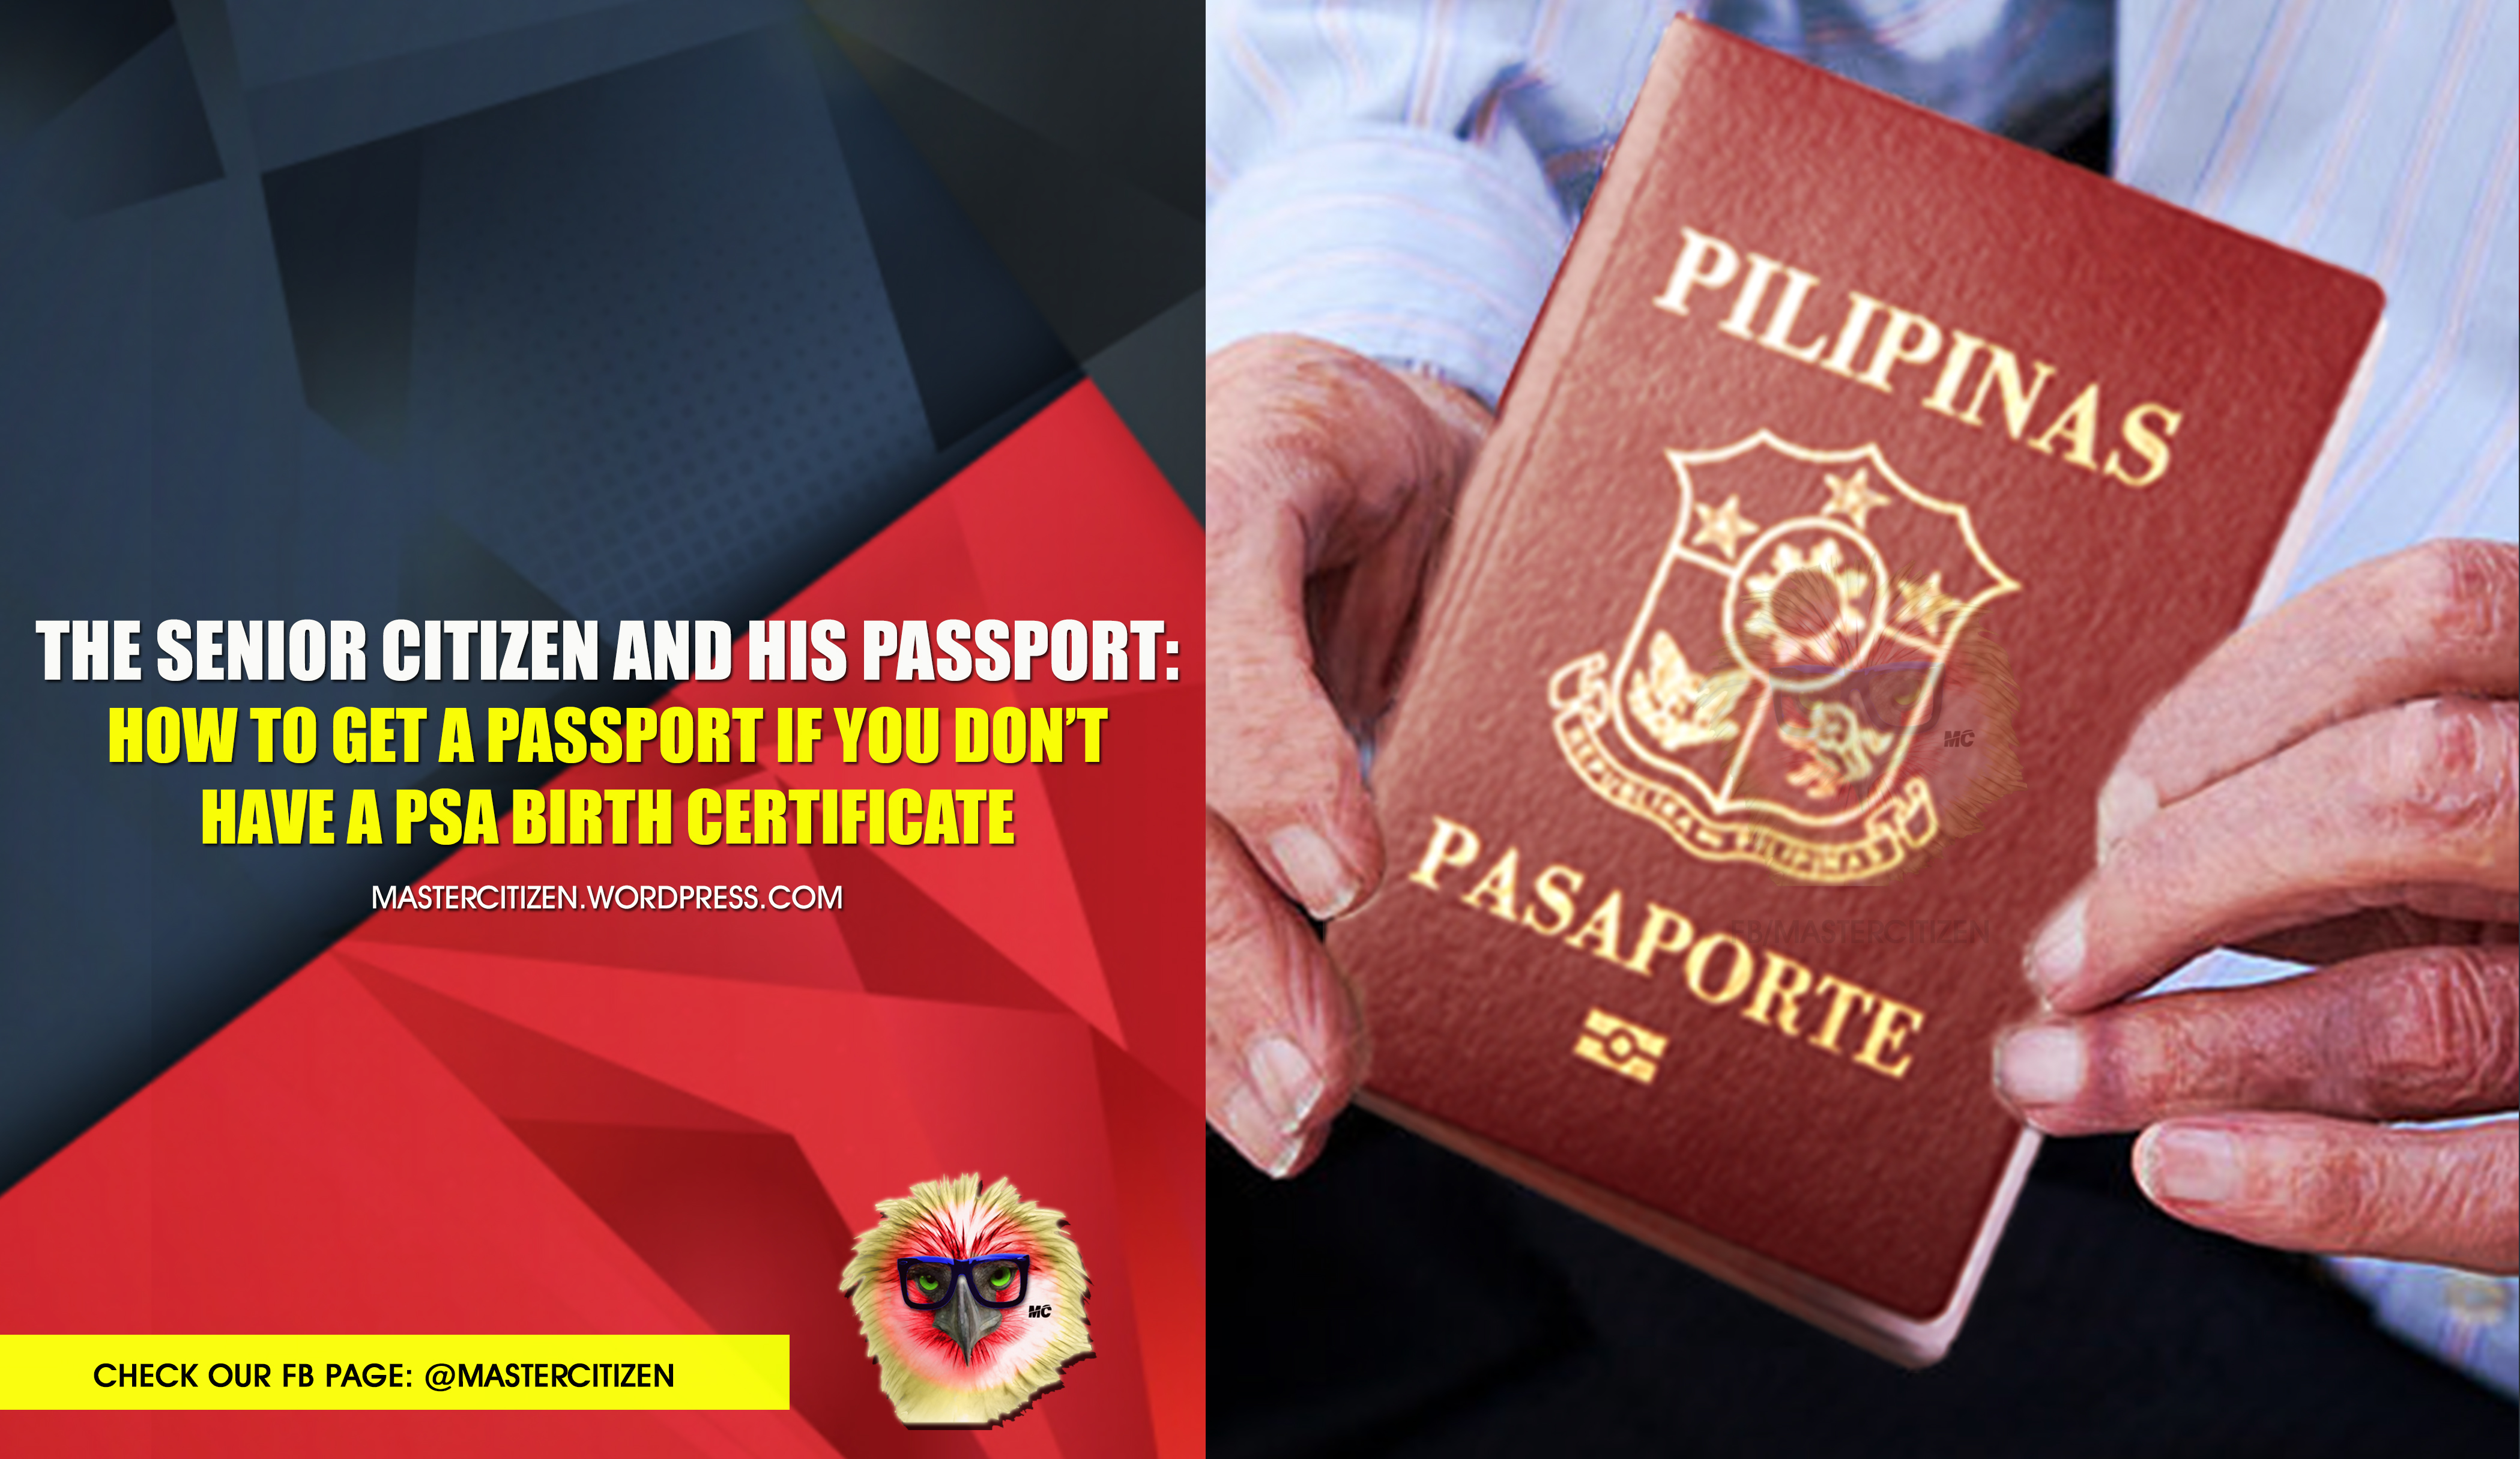 The senior citizen and his passport how to get a passport if you the senior citizen and his passport how to get a passport if you dont have a psa birth certificate mastercitizens blog ccuart Gallery